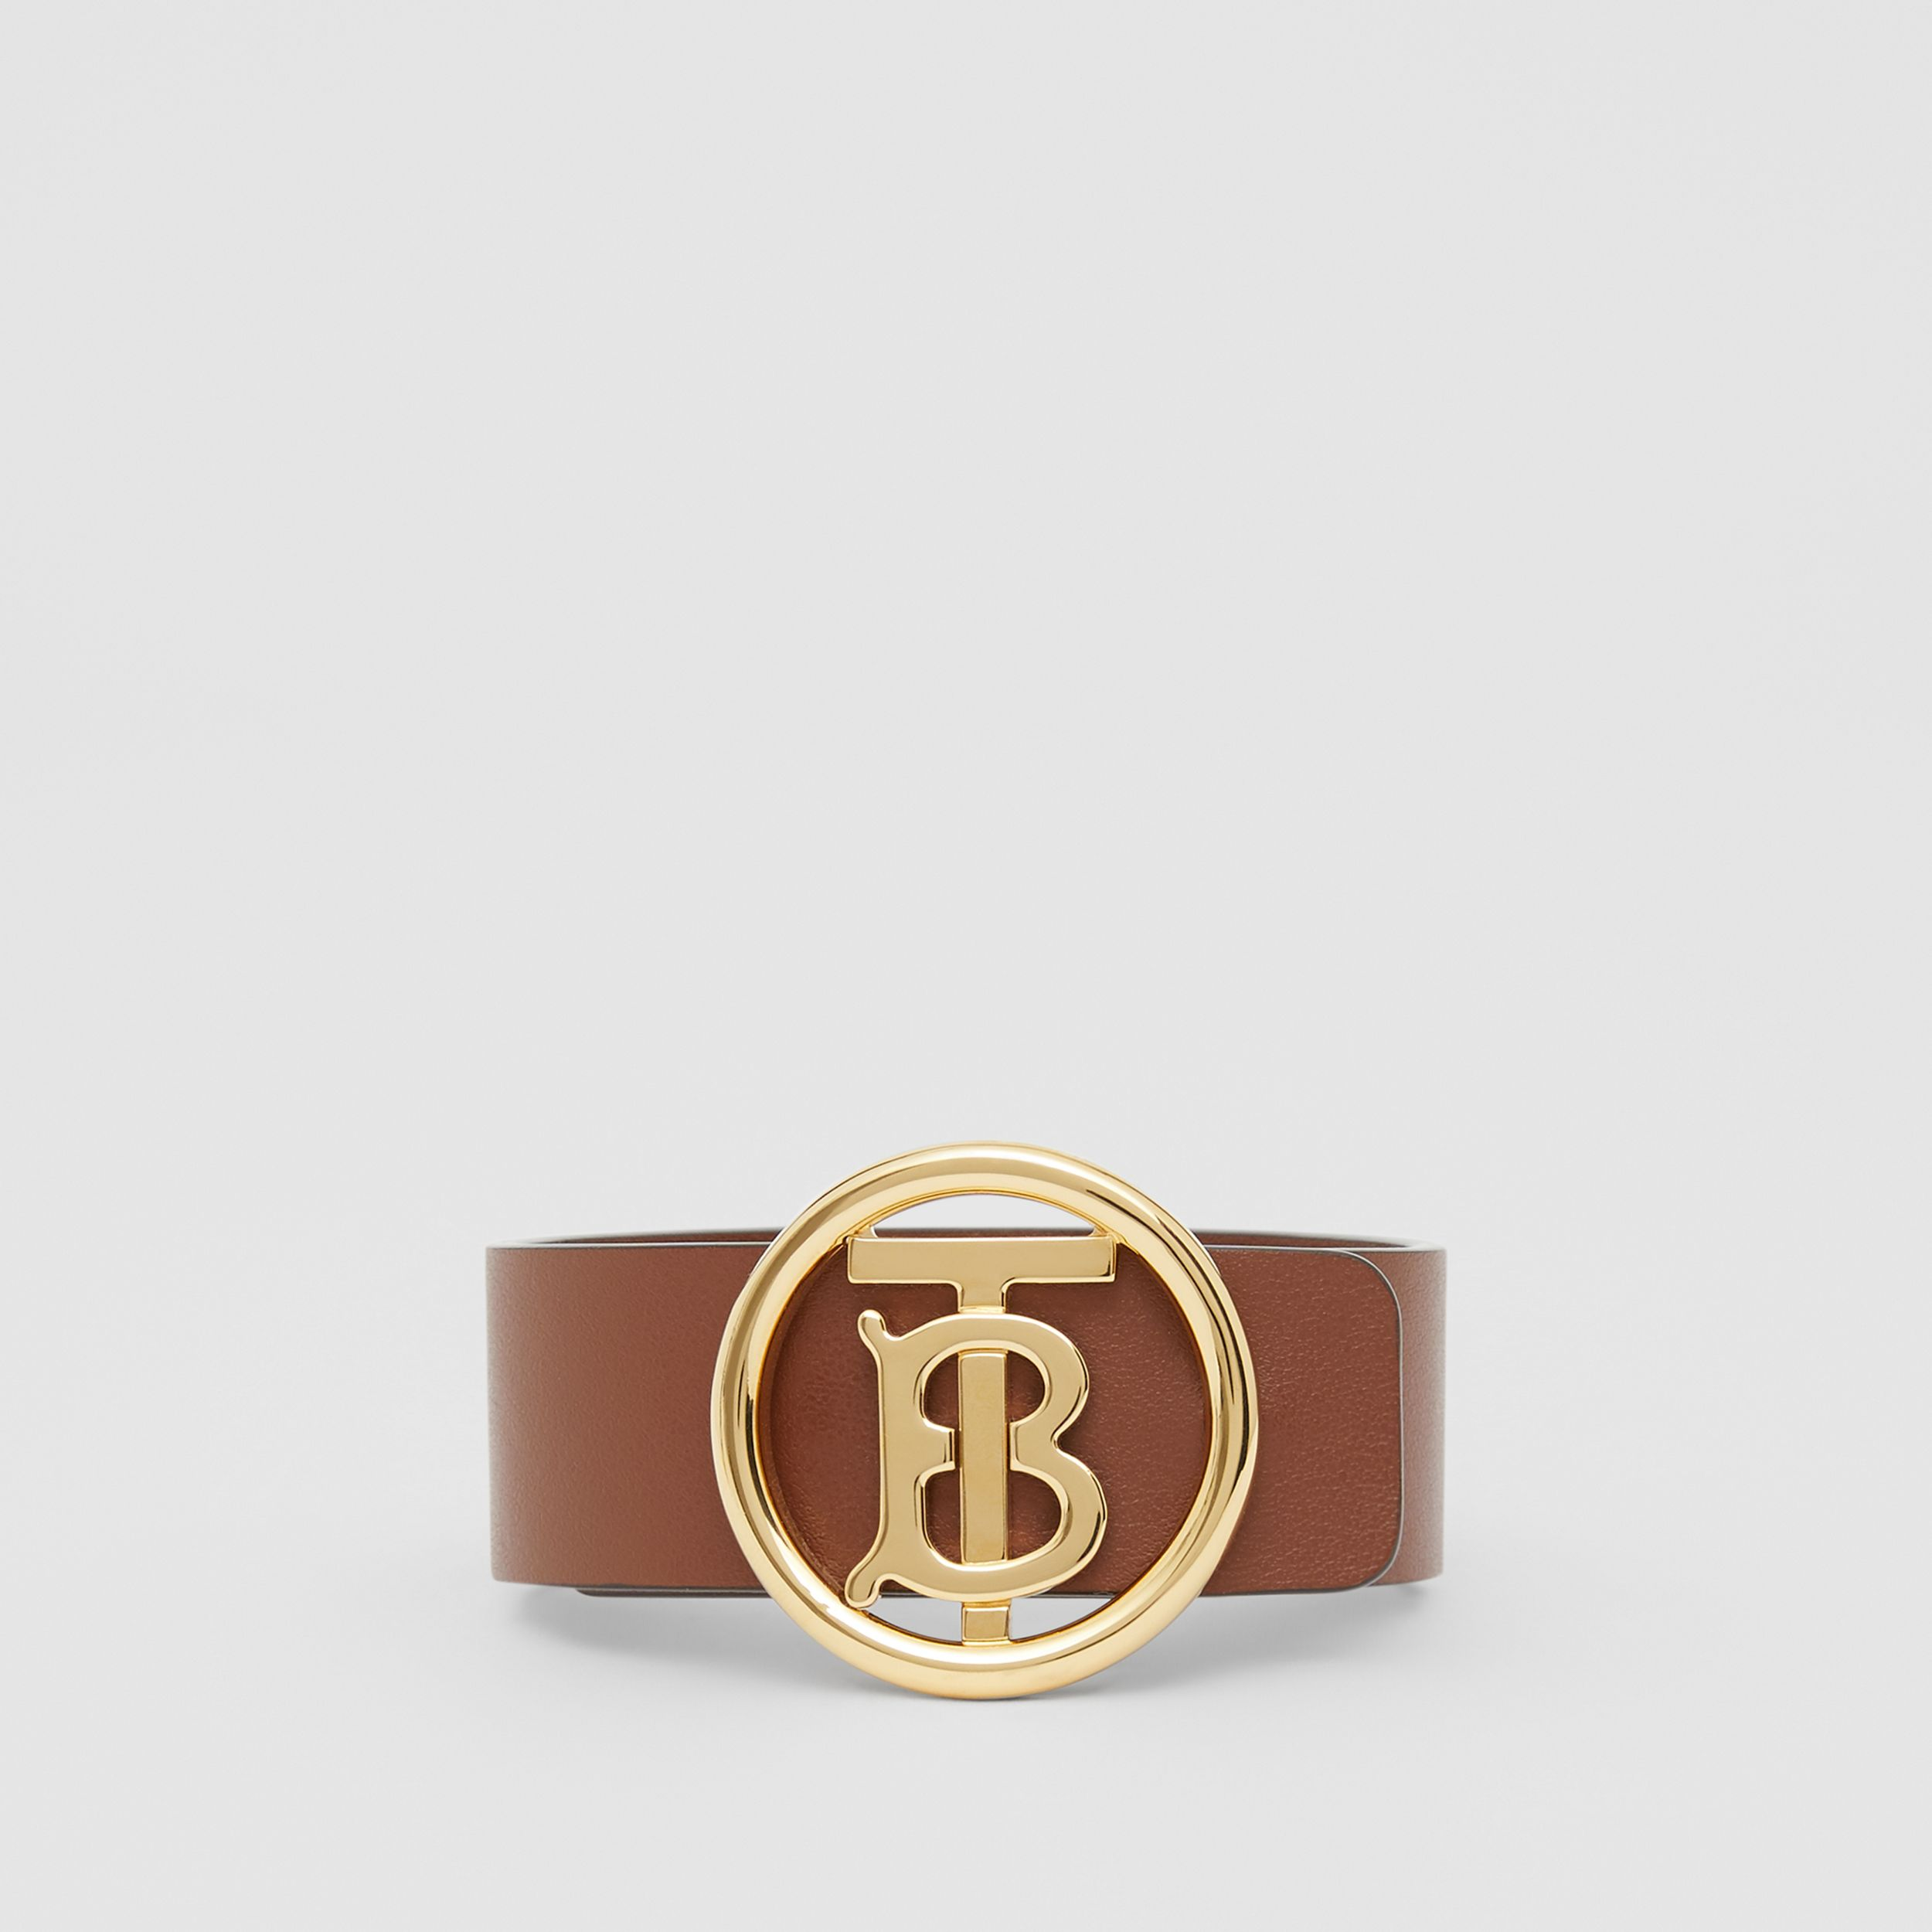 Monogram Motif Leather Bracelet in Tan - Women | Burberry - 1